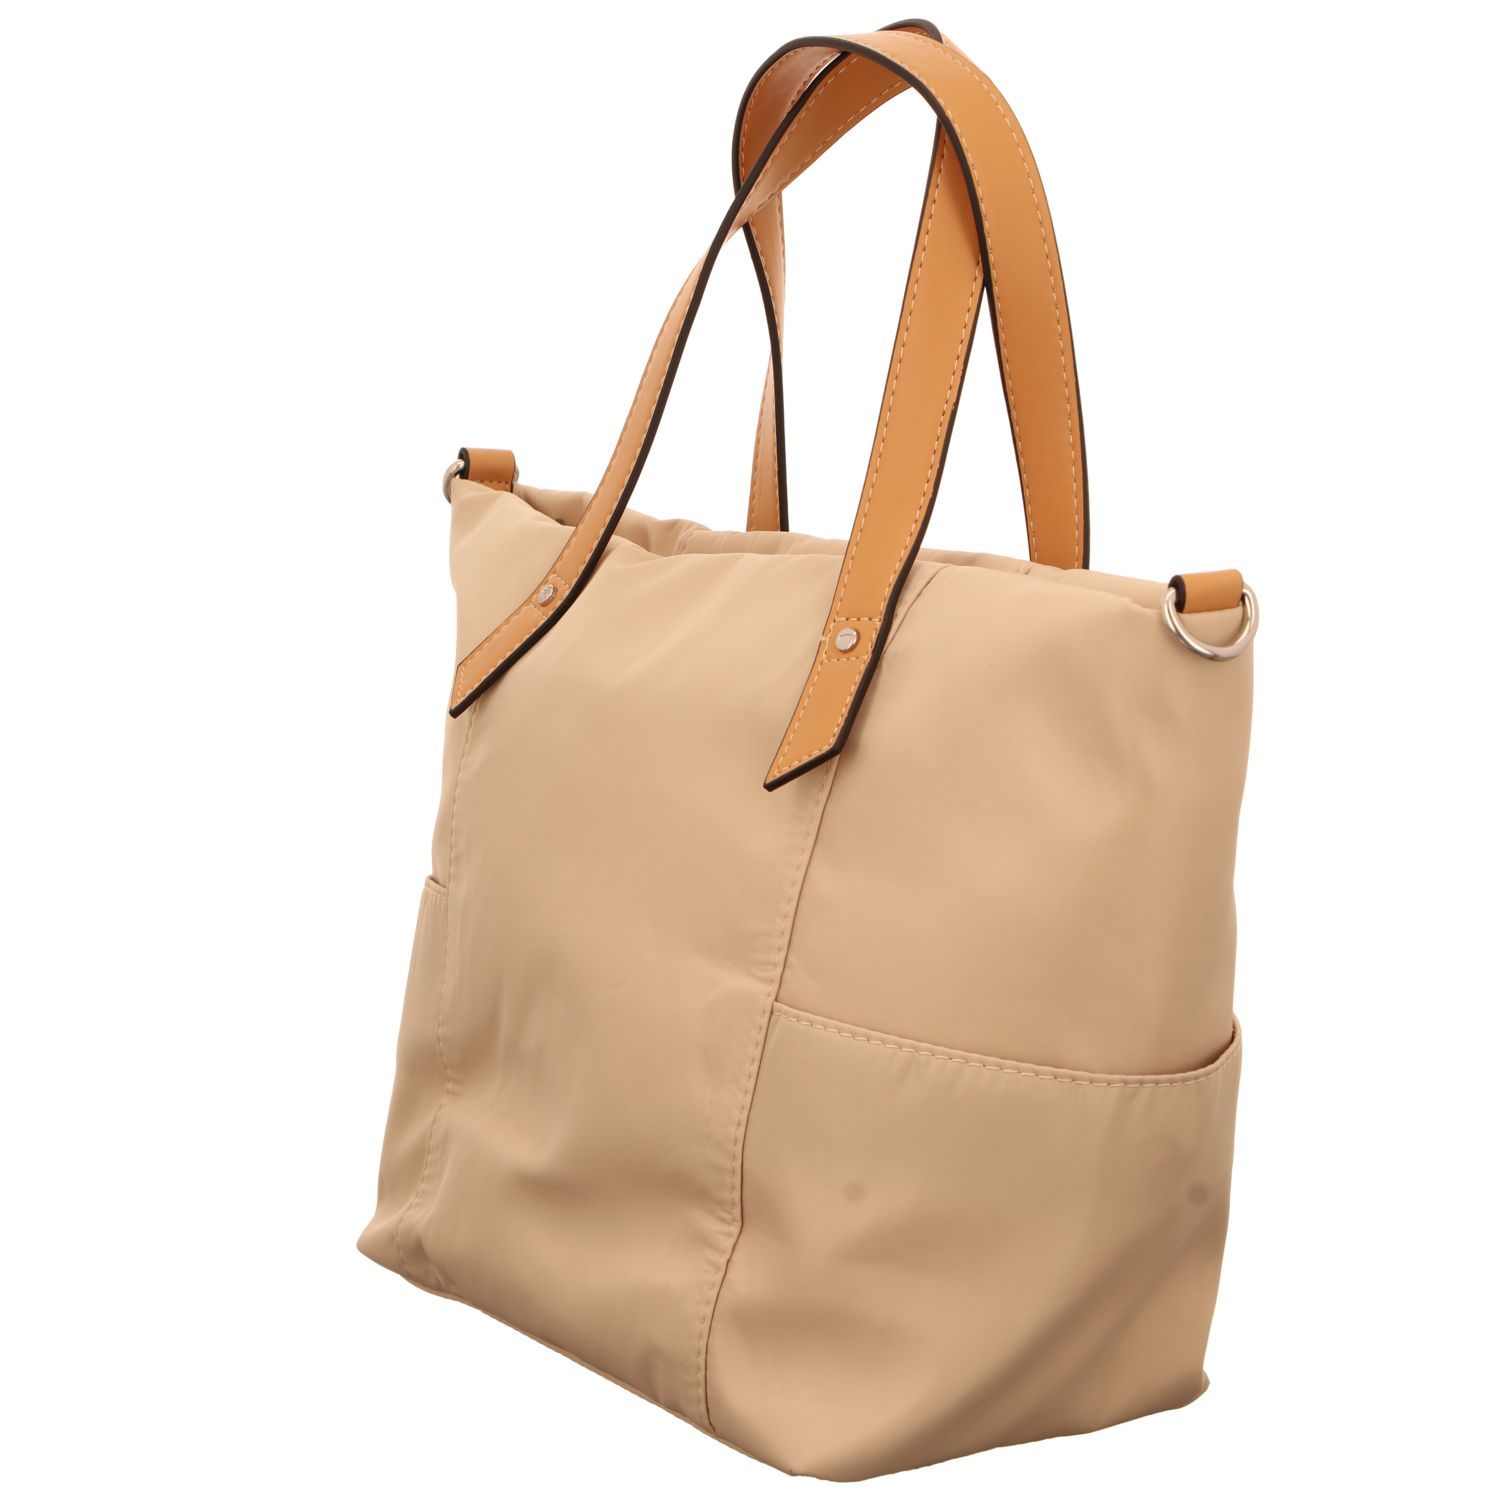 Tom Tailor Shopper beige